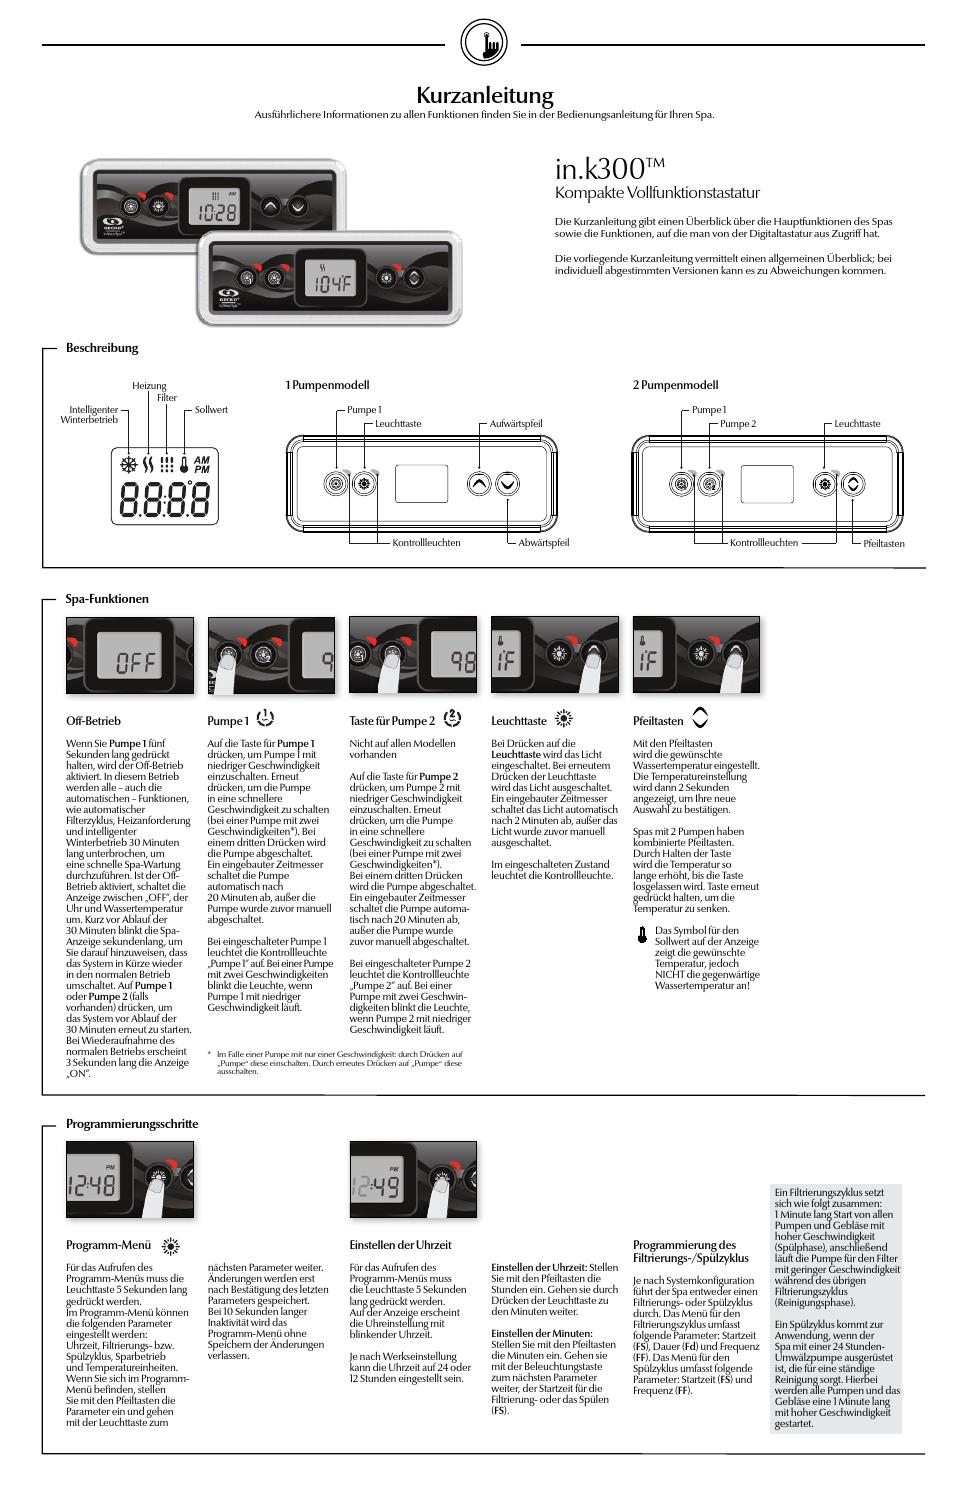 in.k300 keypad quick reference card (Deutsch edition) by Gecko ...